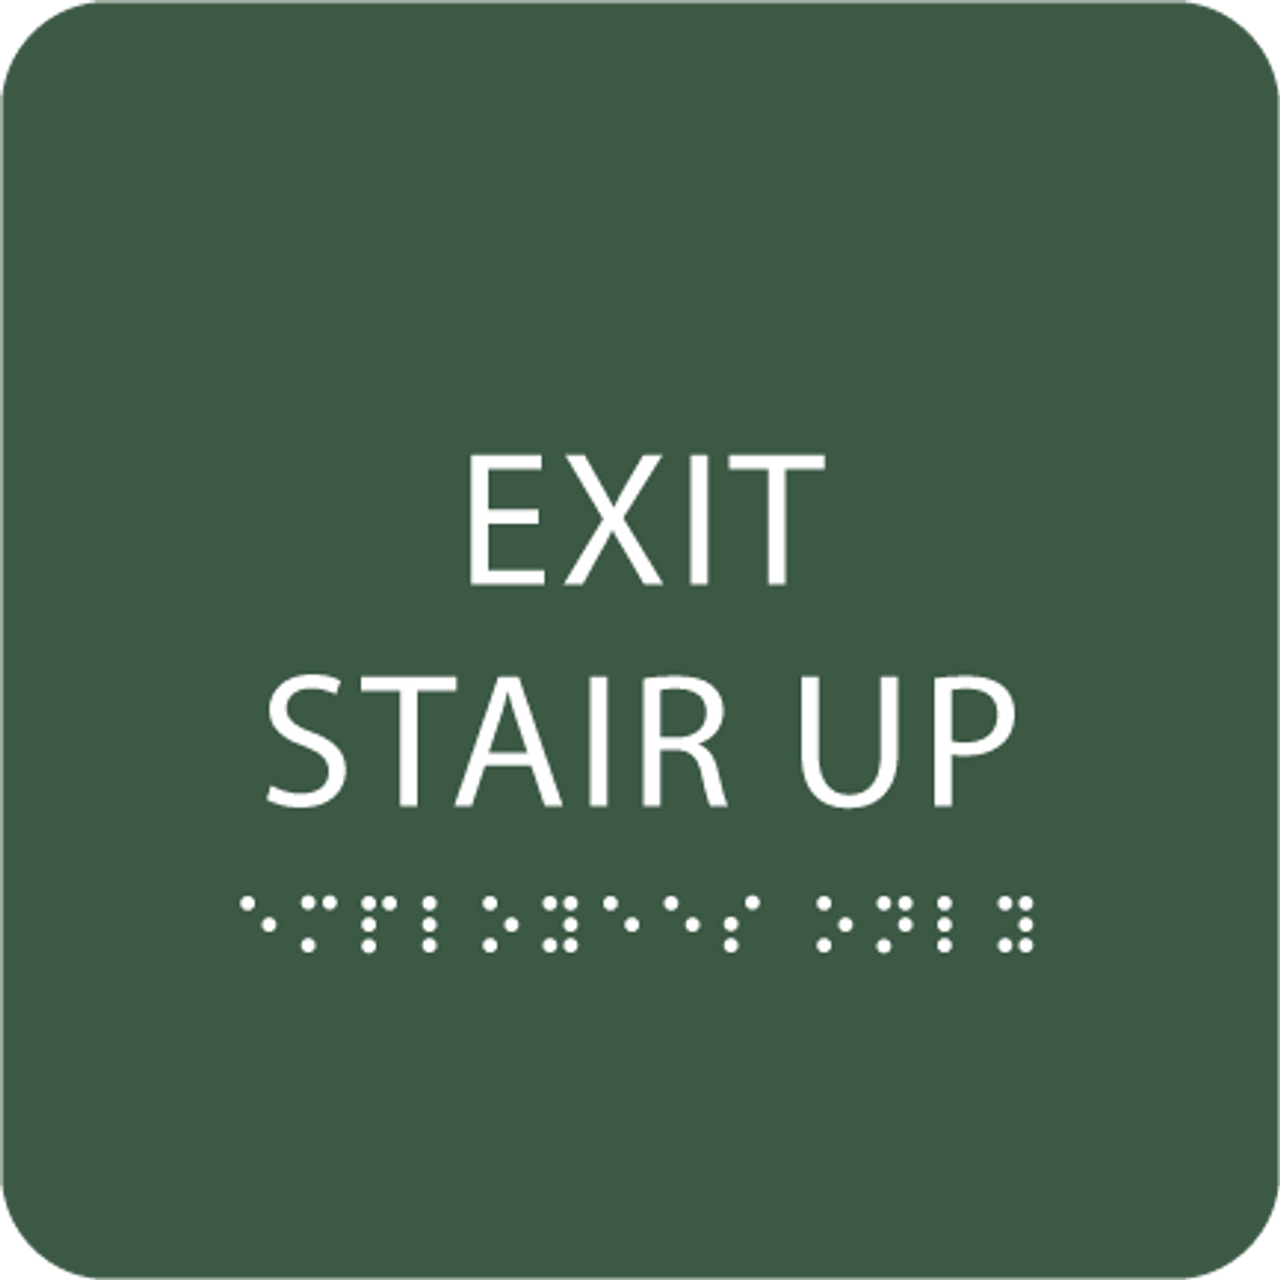 Green Exit Stair Up Tactile Sign